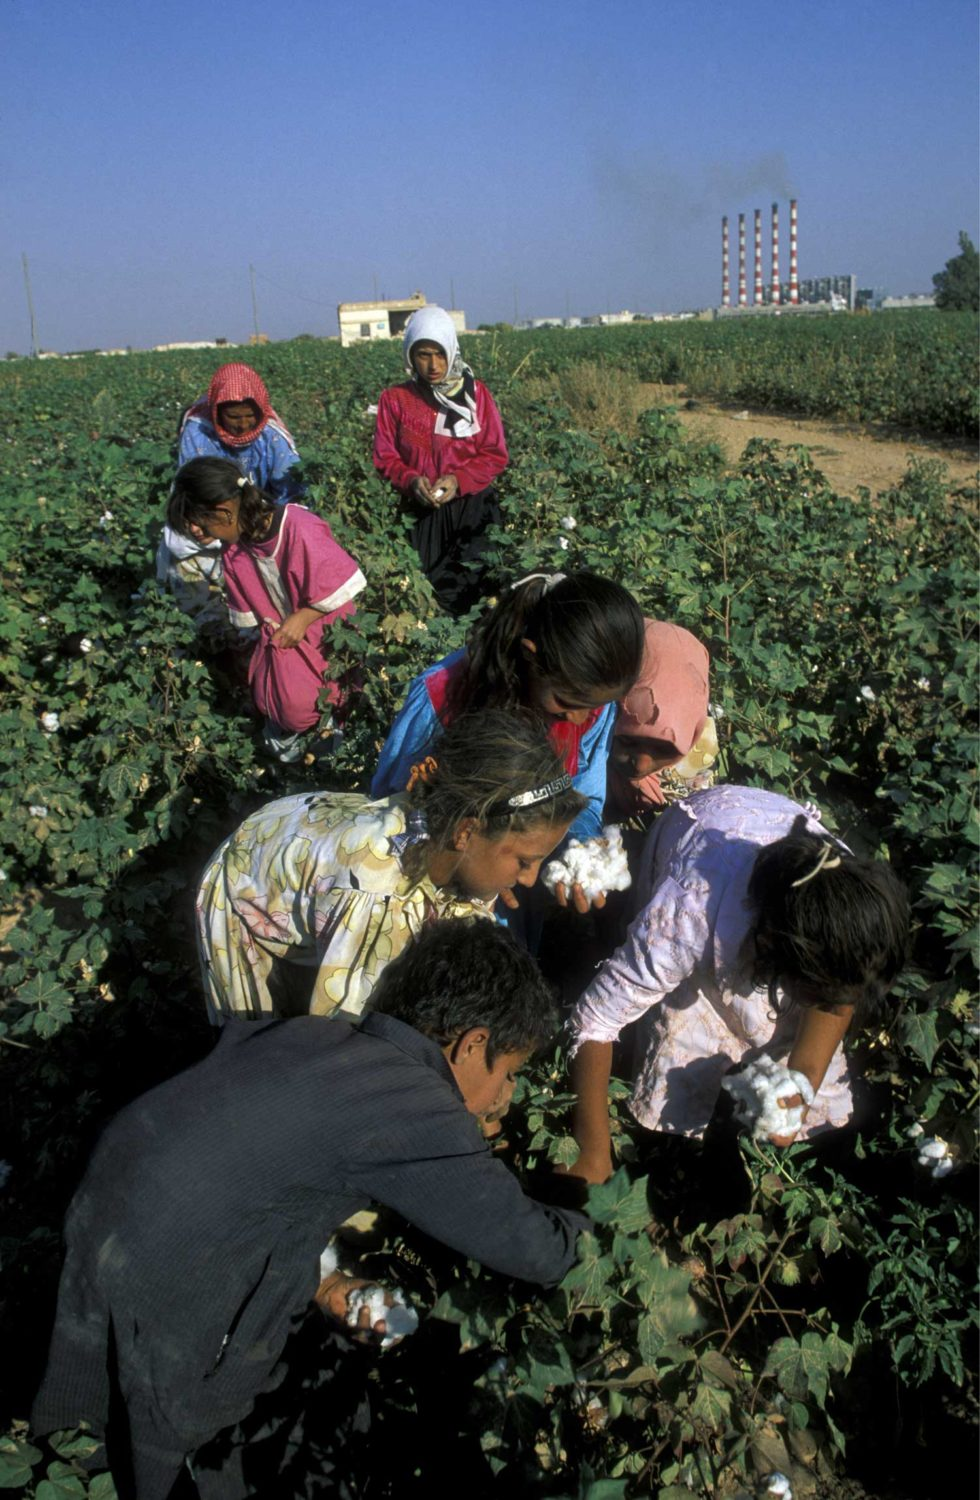 Children Laboring in the field